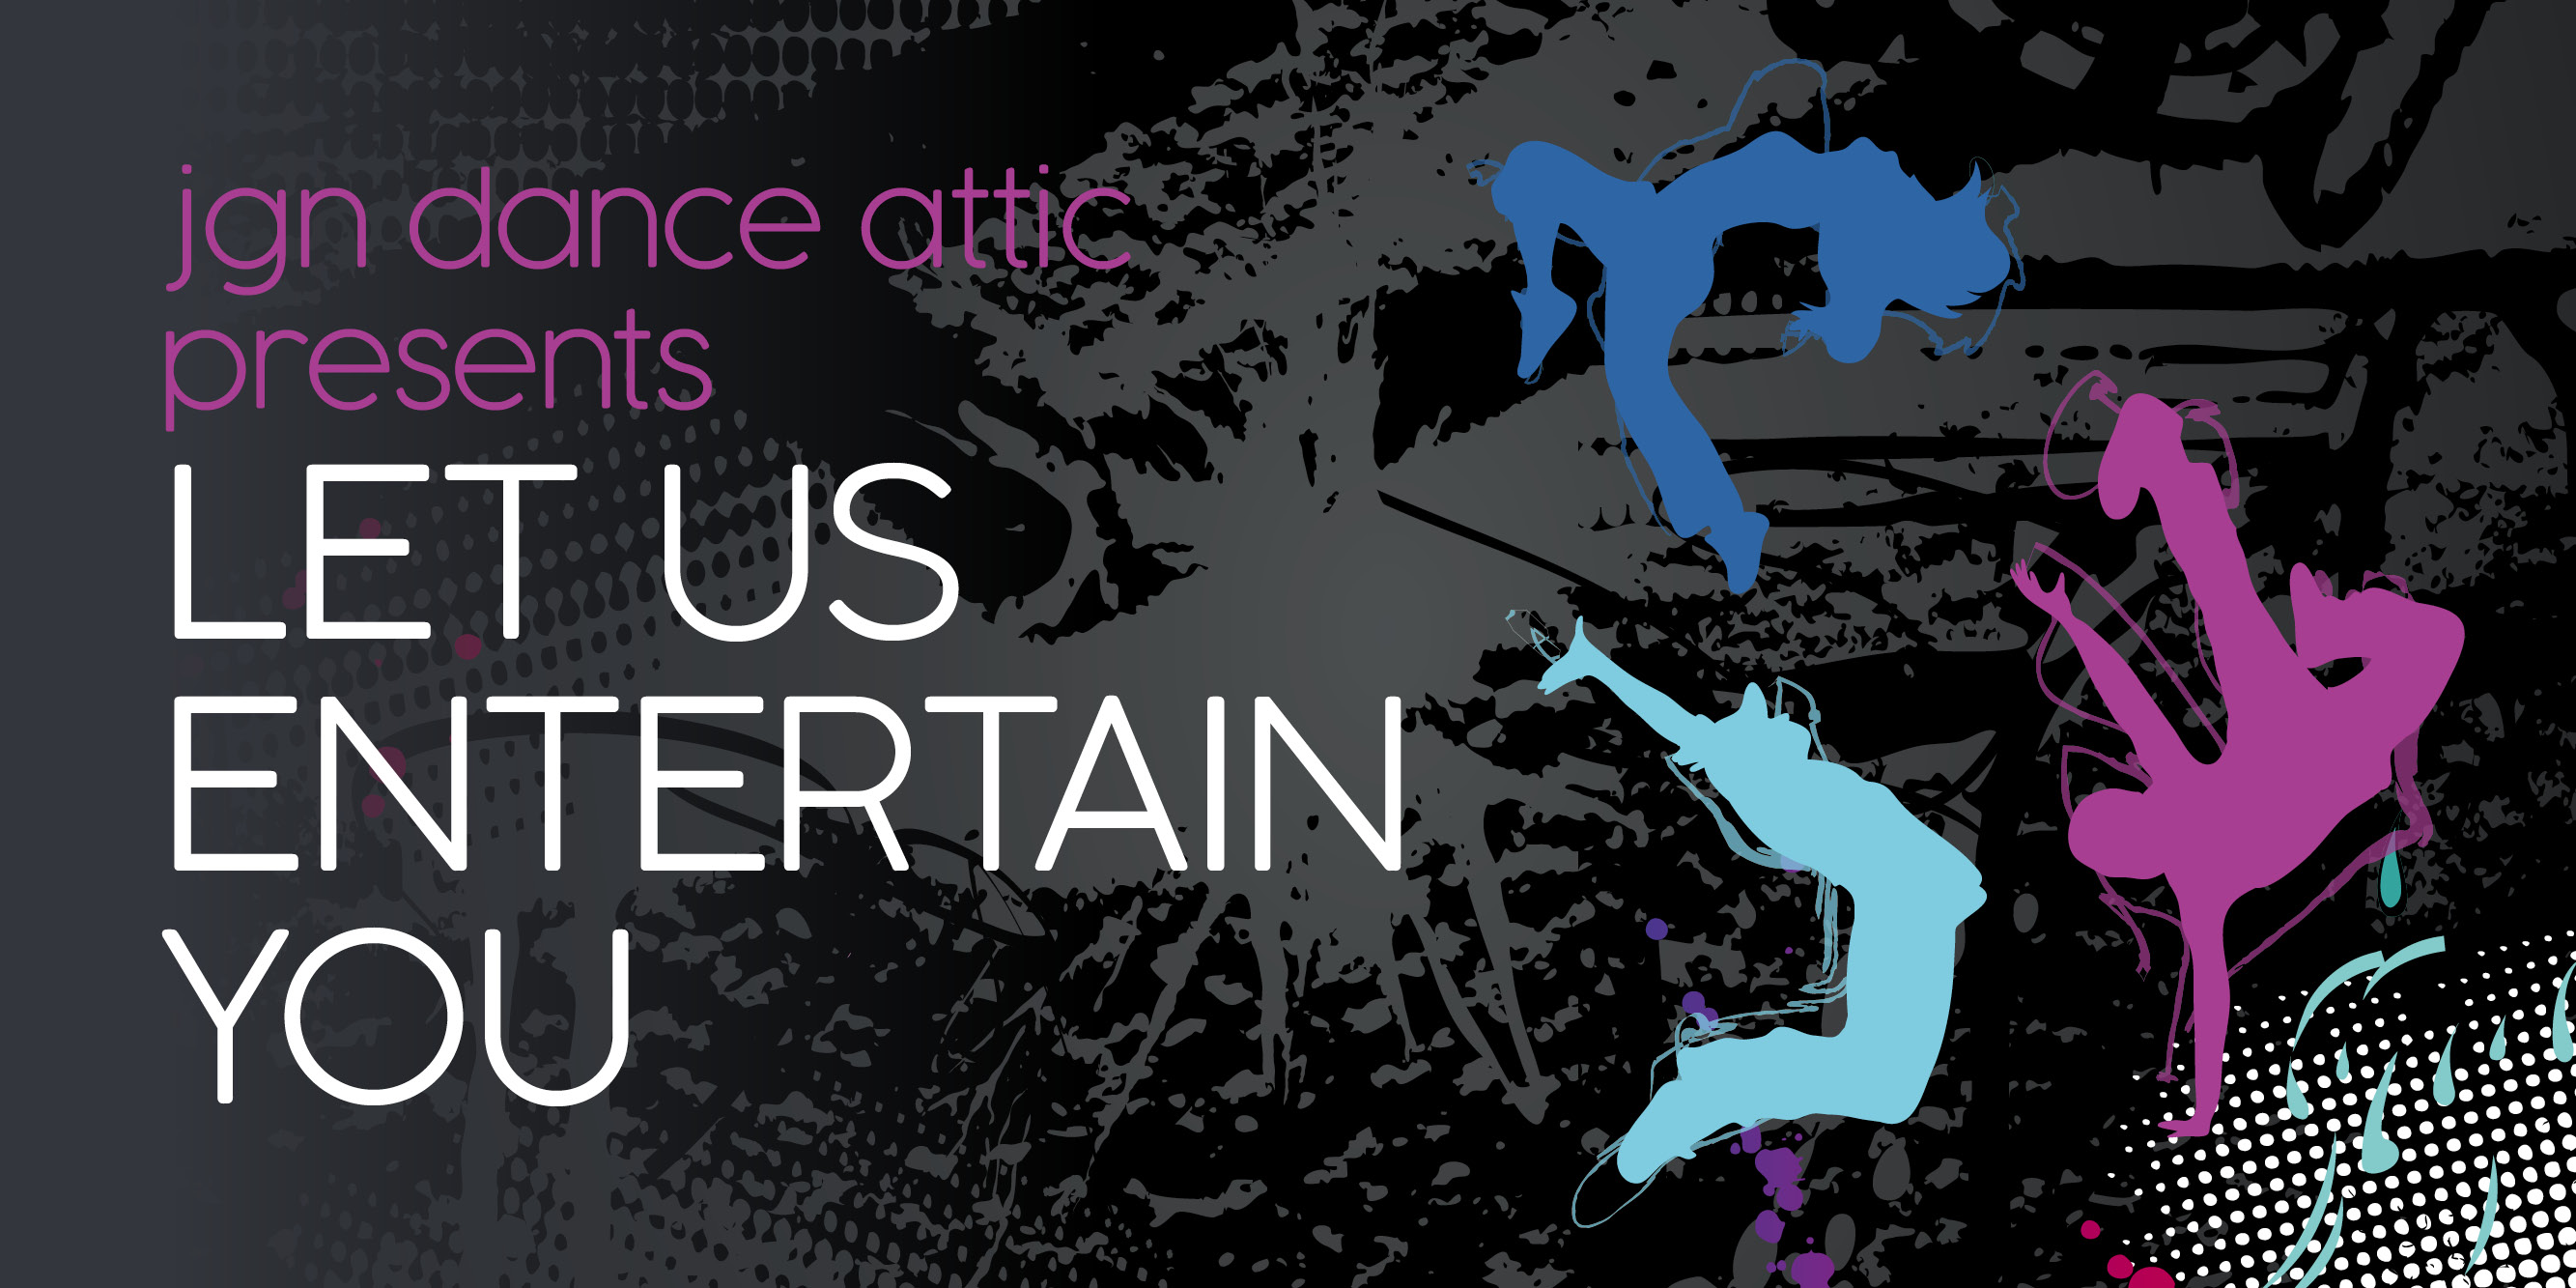 JGN Dance Attic - Let Us Entertain You Image